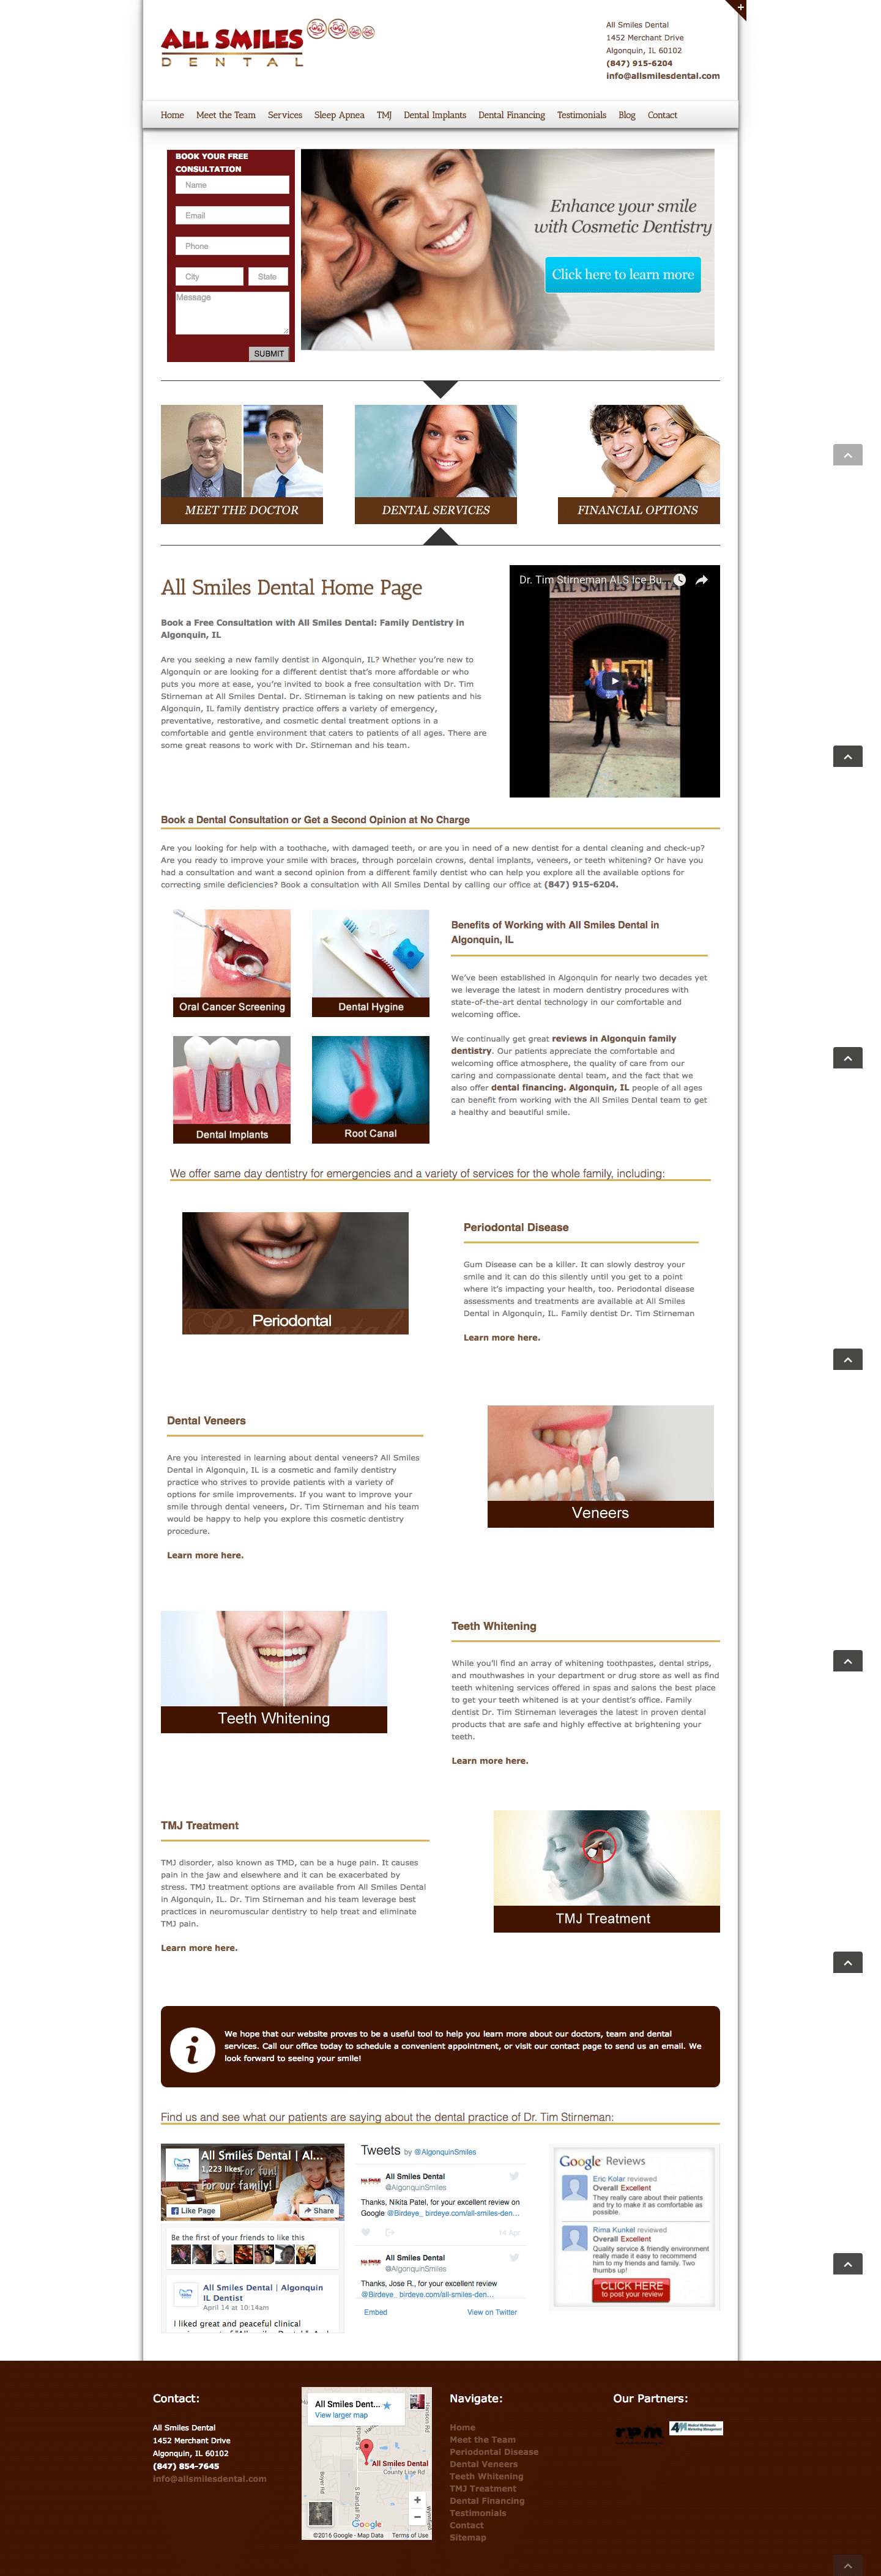 Website Family Dentist, Algonquin, IL | All Smiles Dental